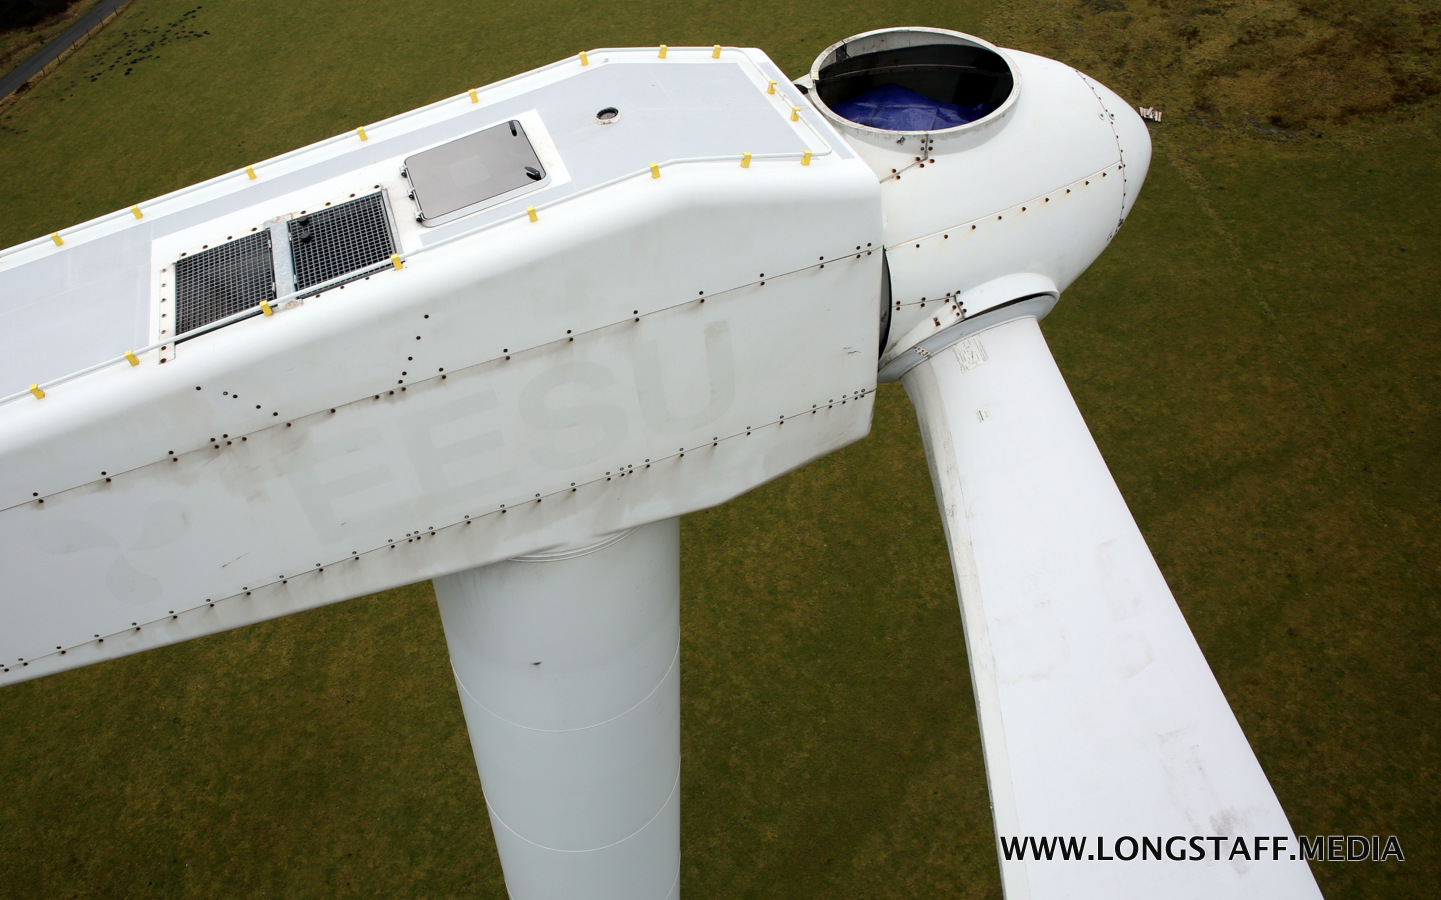 longstaff-media-drone-wind-turbine-inspection-image.JPG#asset:471